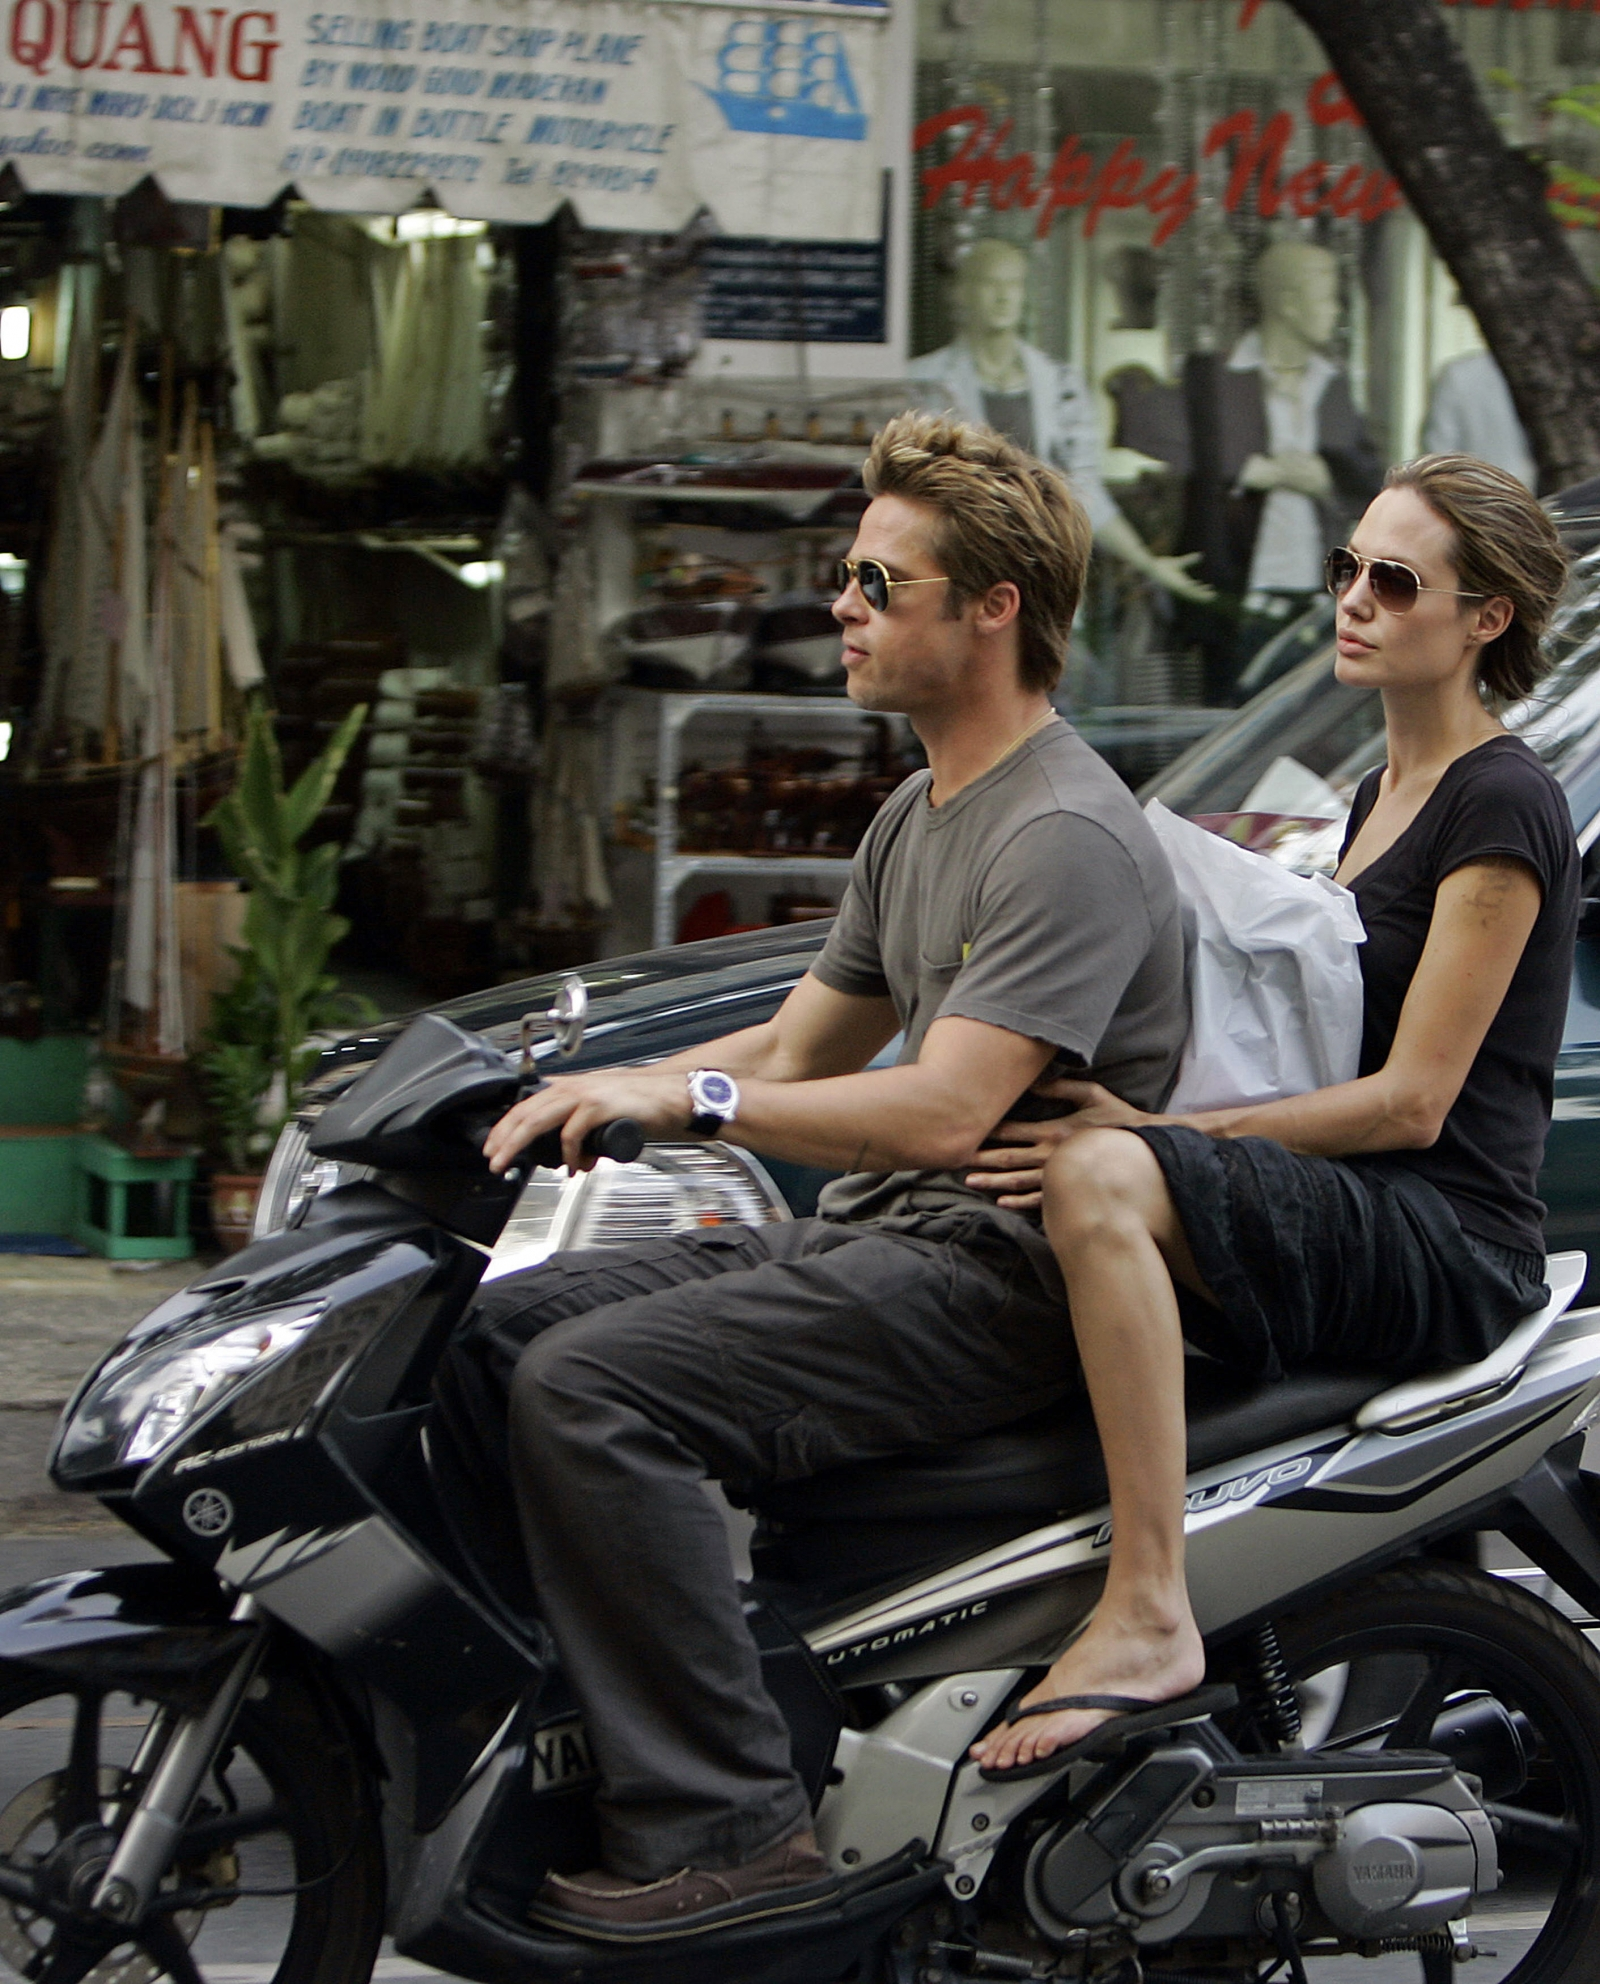 Brad Pitt and Angelina Jolie in Vietnam